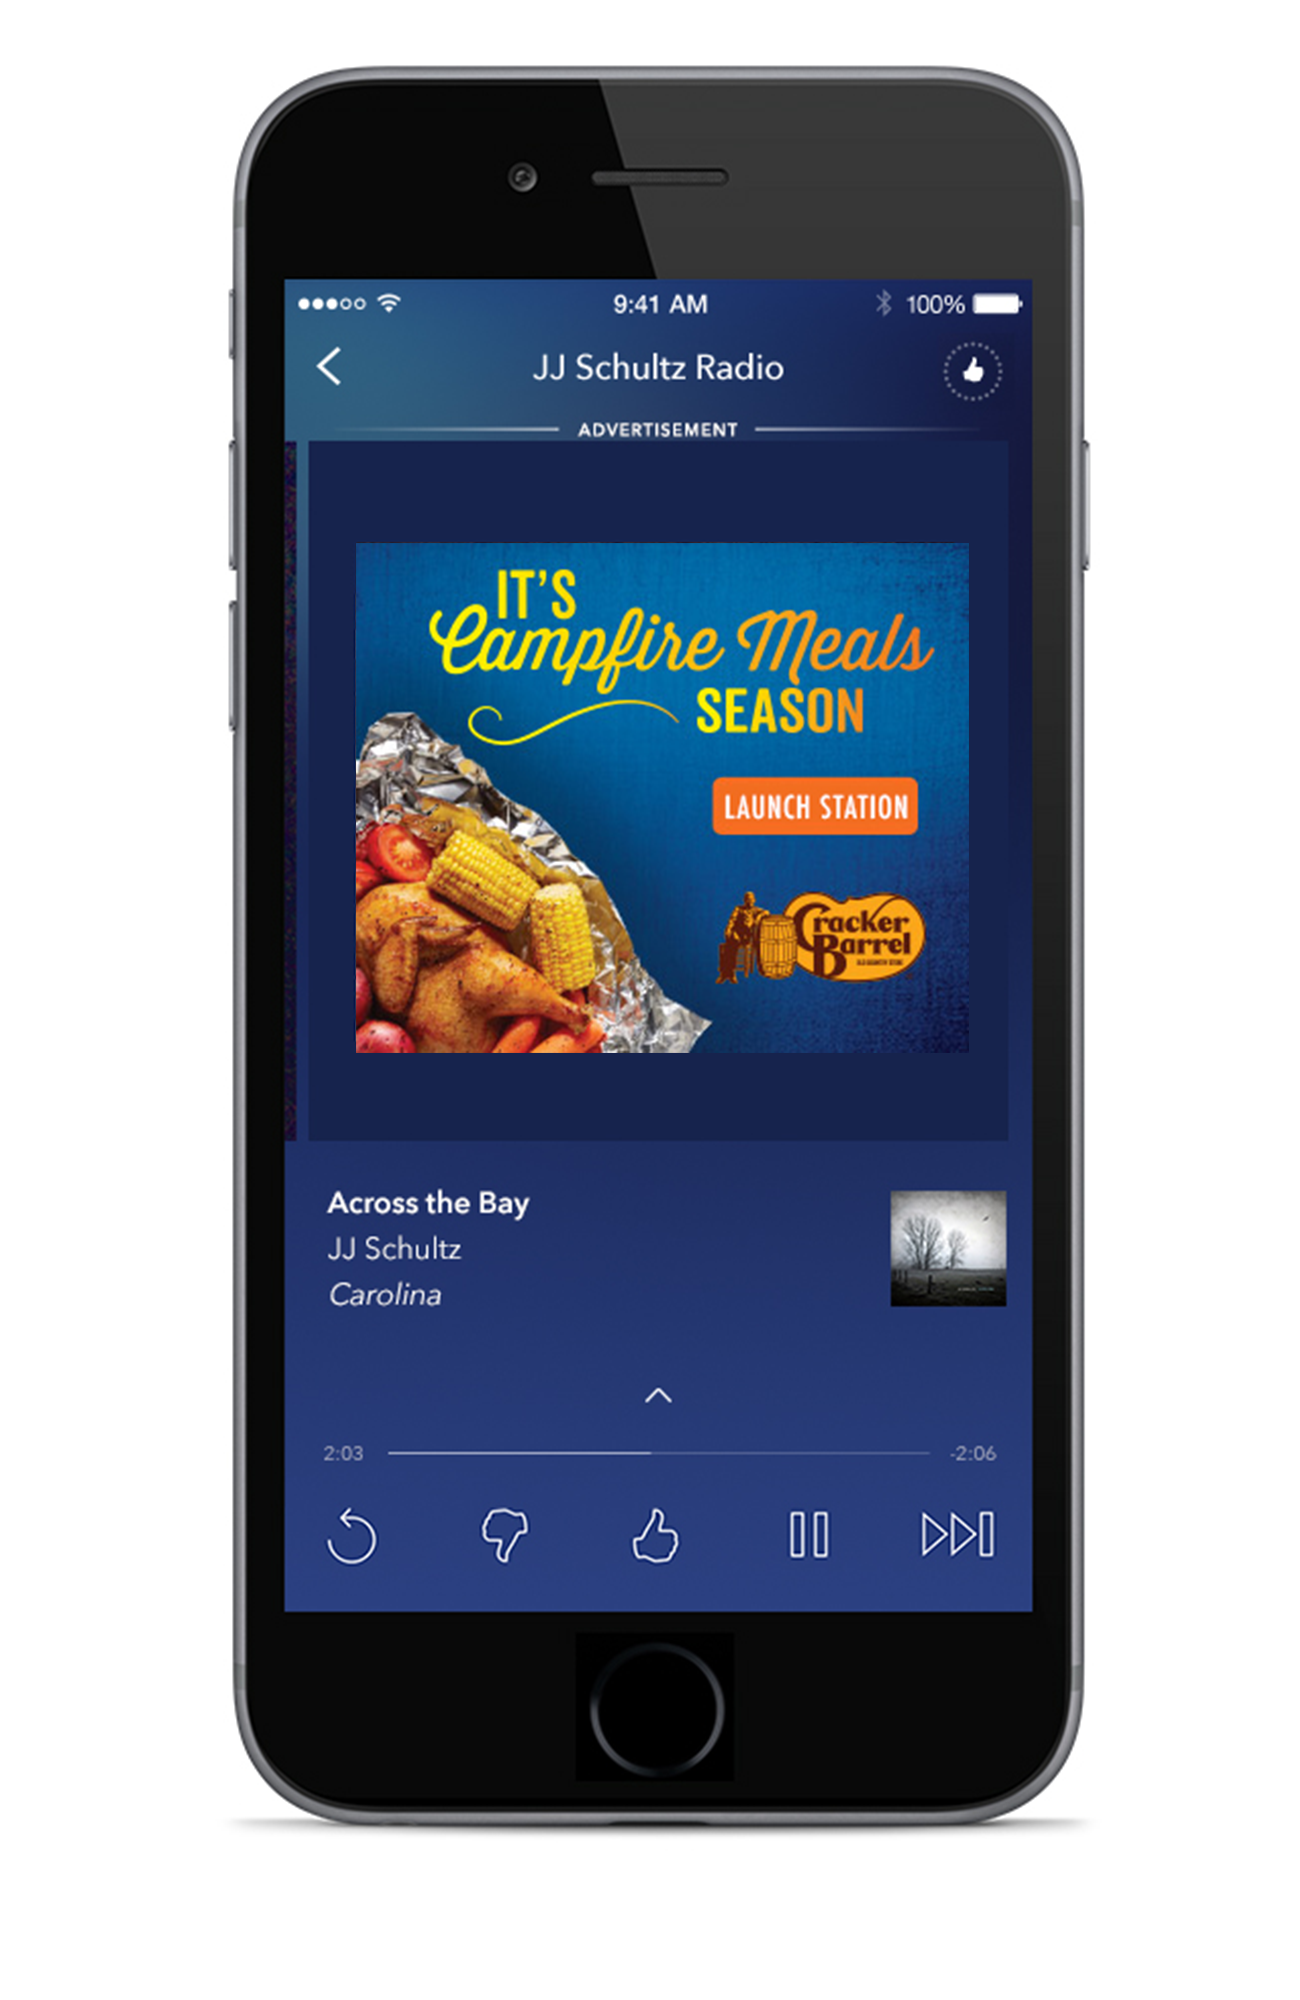 Cracker Barrel - The sounds of a fire crackling, crickets chirping, and descriptive details of savory flavors are key elements of this mobile audio ad for Cracker Barrel, who wanted to get the word out about their Campfire Meals.